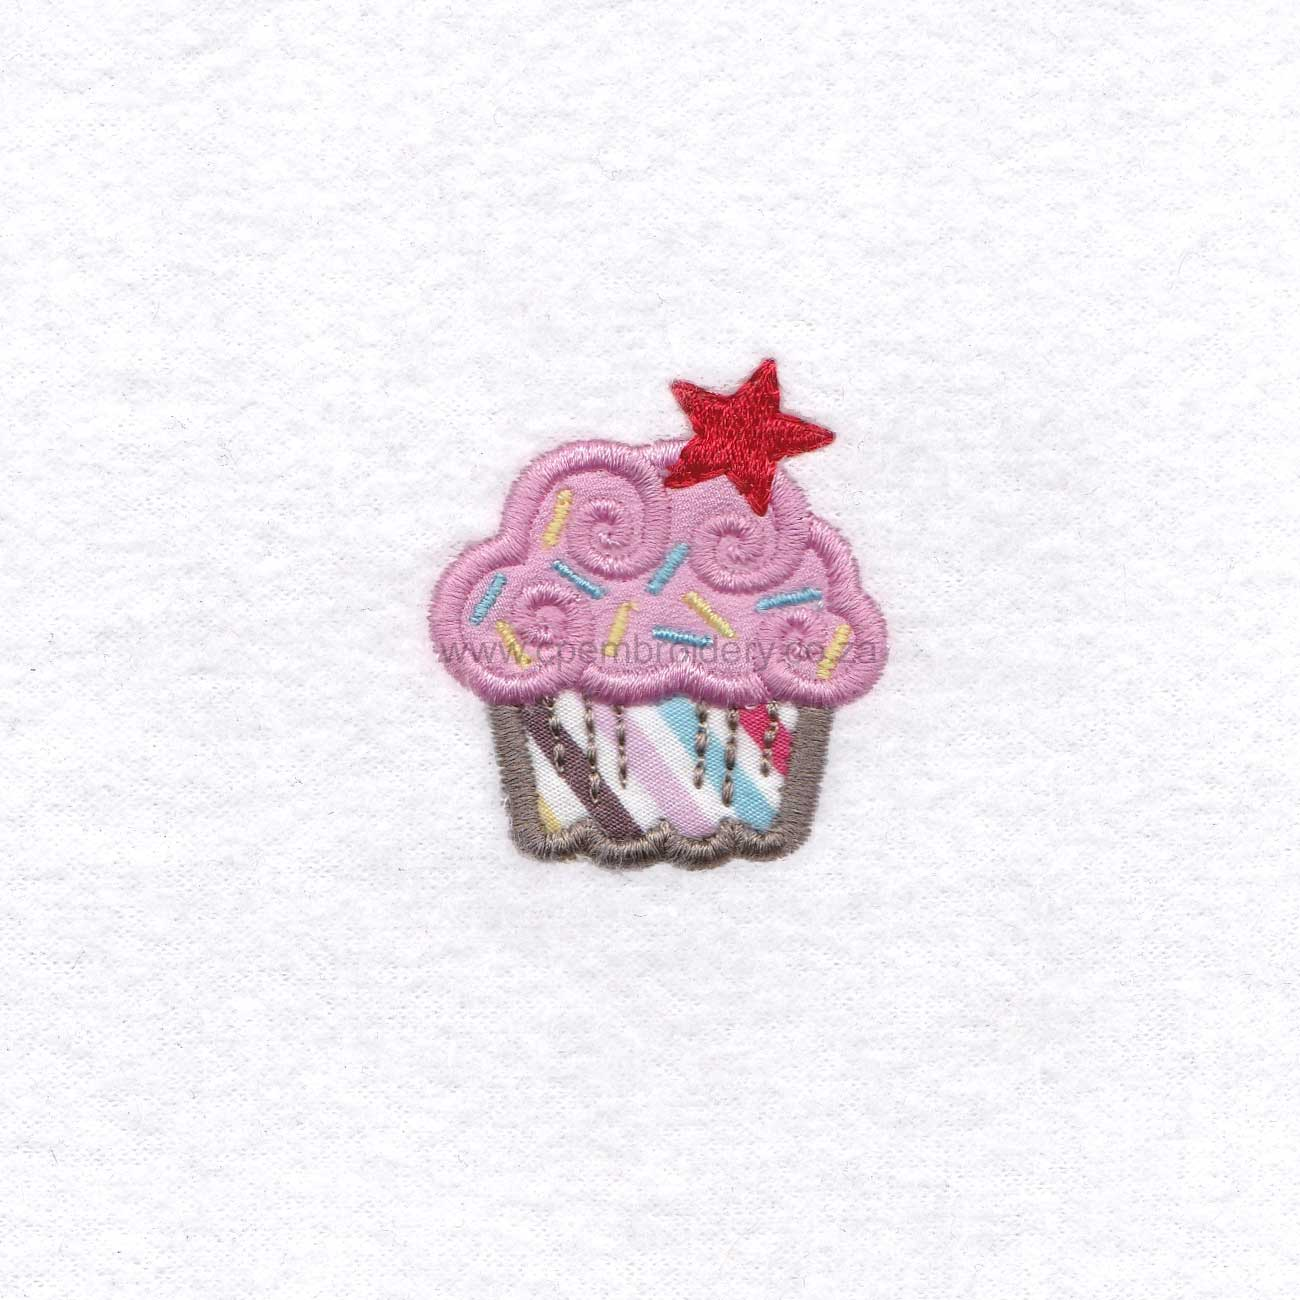 extra small pink cupcake cookie sprikles red star decorated applique embroidery design